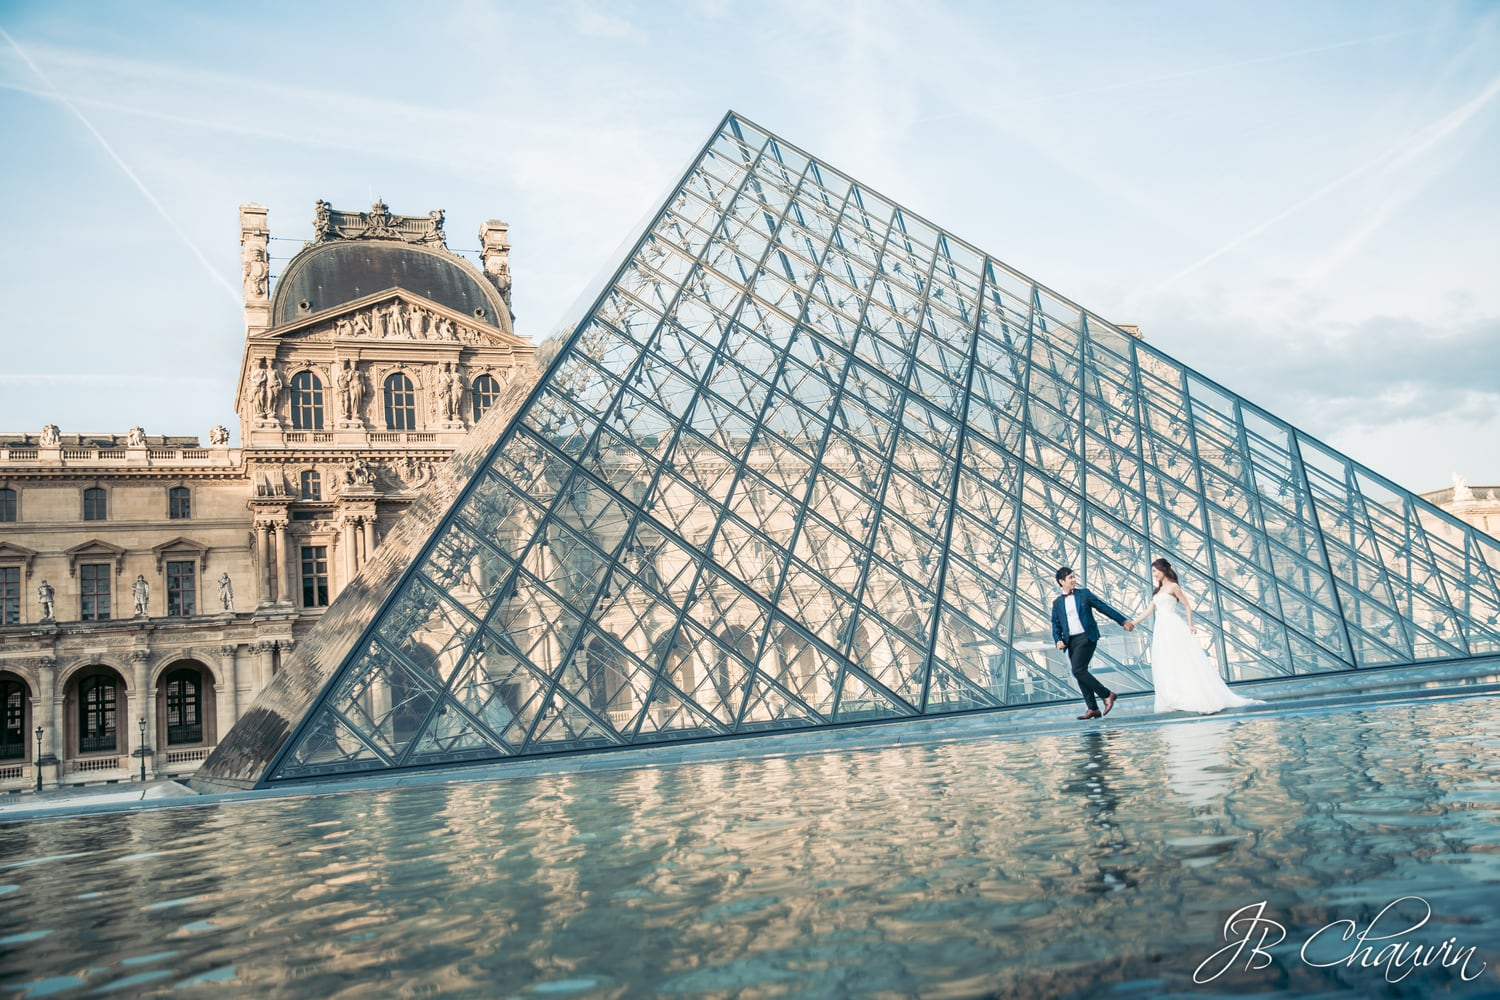 elopement in Paris, studio art photographe, jean-baptiste Chauvin, love session in paris, photoshoot in paris, photographer in paris, photographer for couples in paris, love in paris